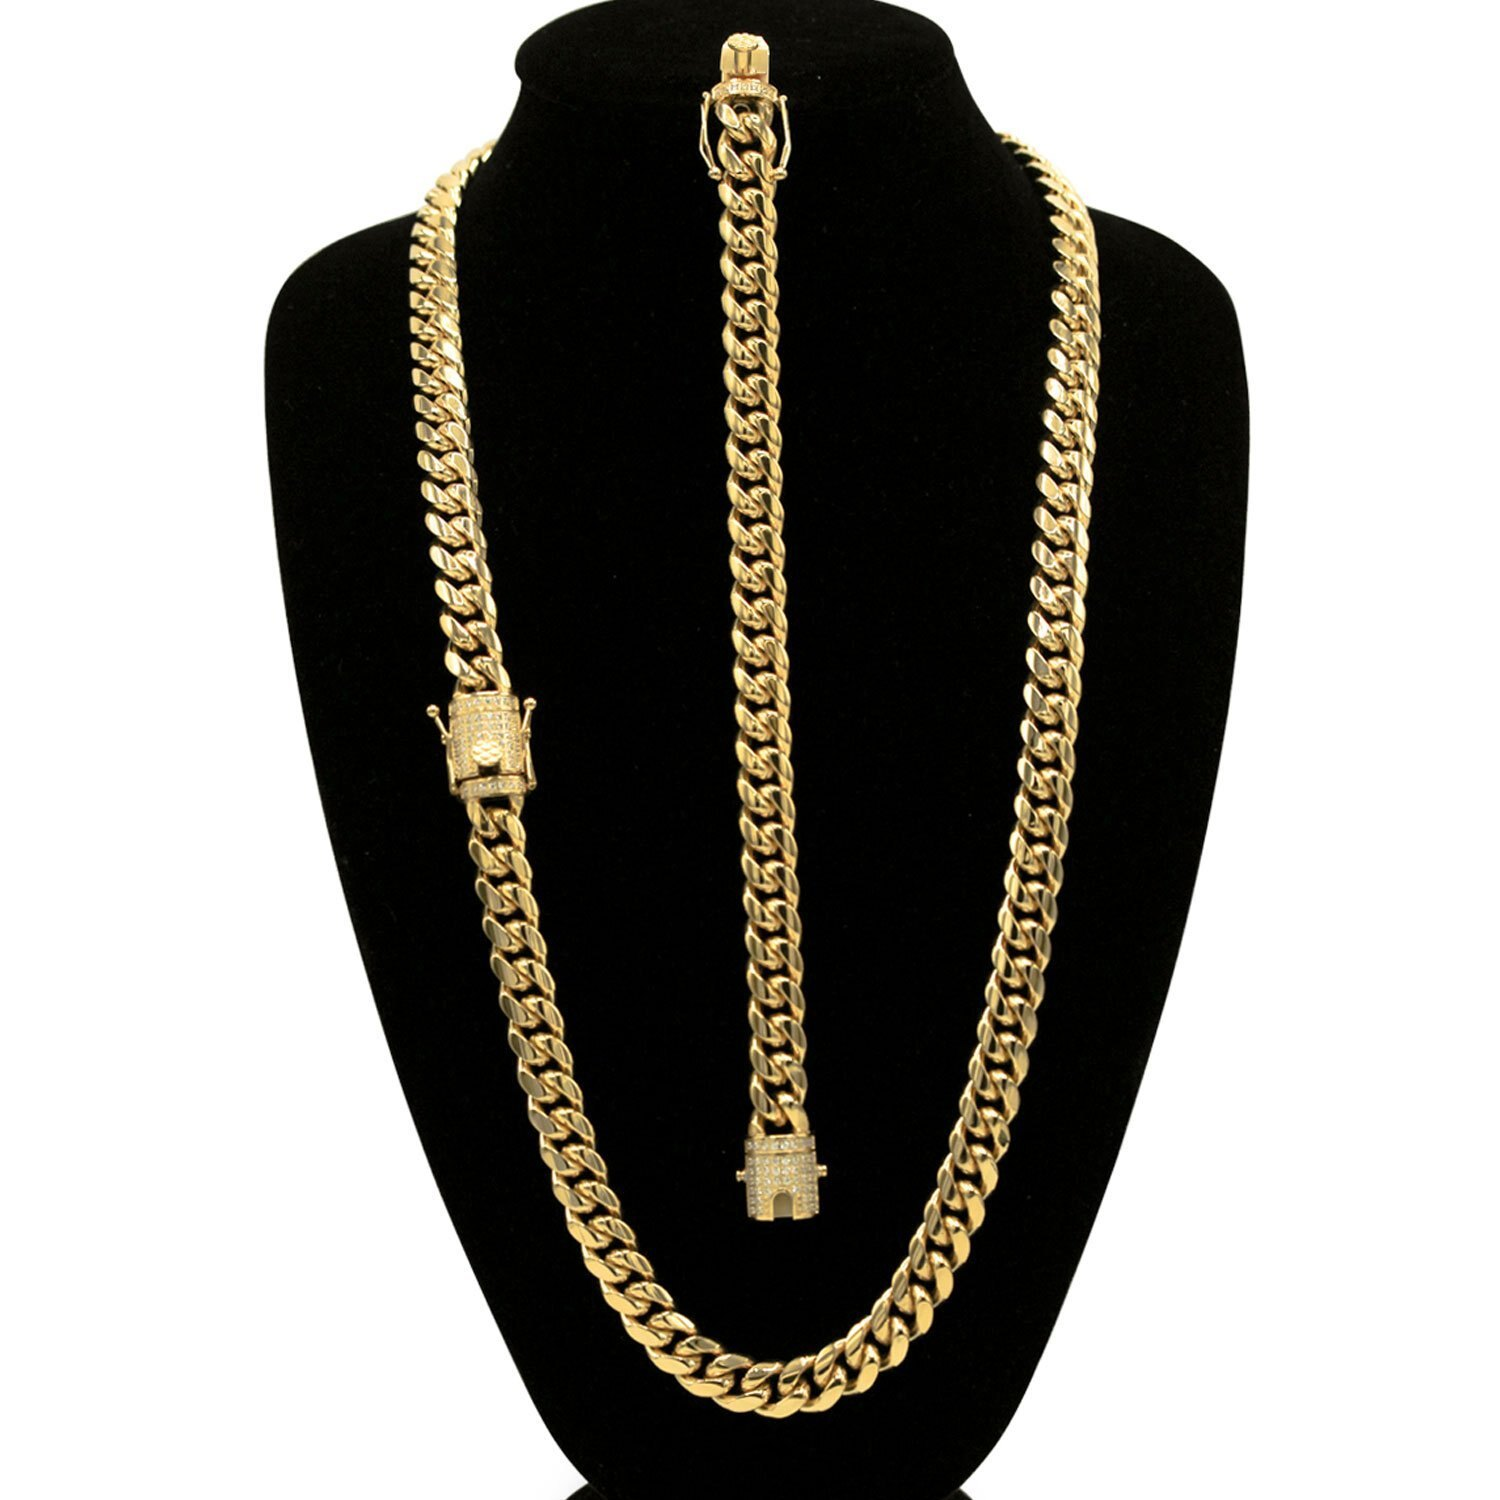 2880bdbe24332 Cuban Link Necklace Bracelet Set Gold Plated Cubic Zirconia Box Clasp Miami  Cuban Chain Stainless Steel Fashion Jewelry 10mm 12mm 14mm